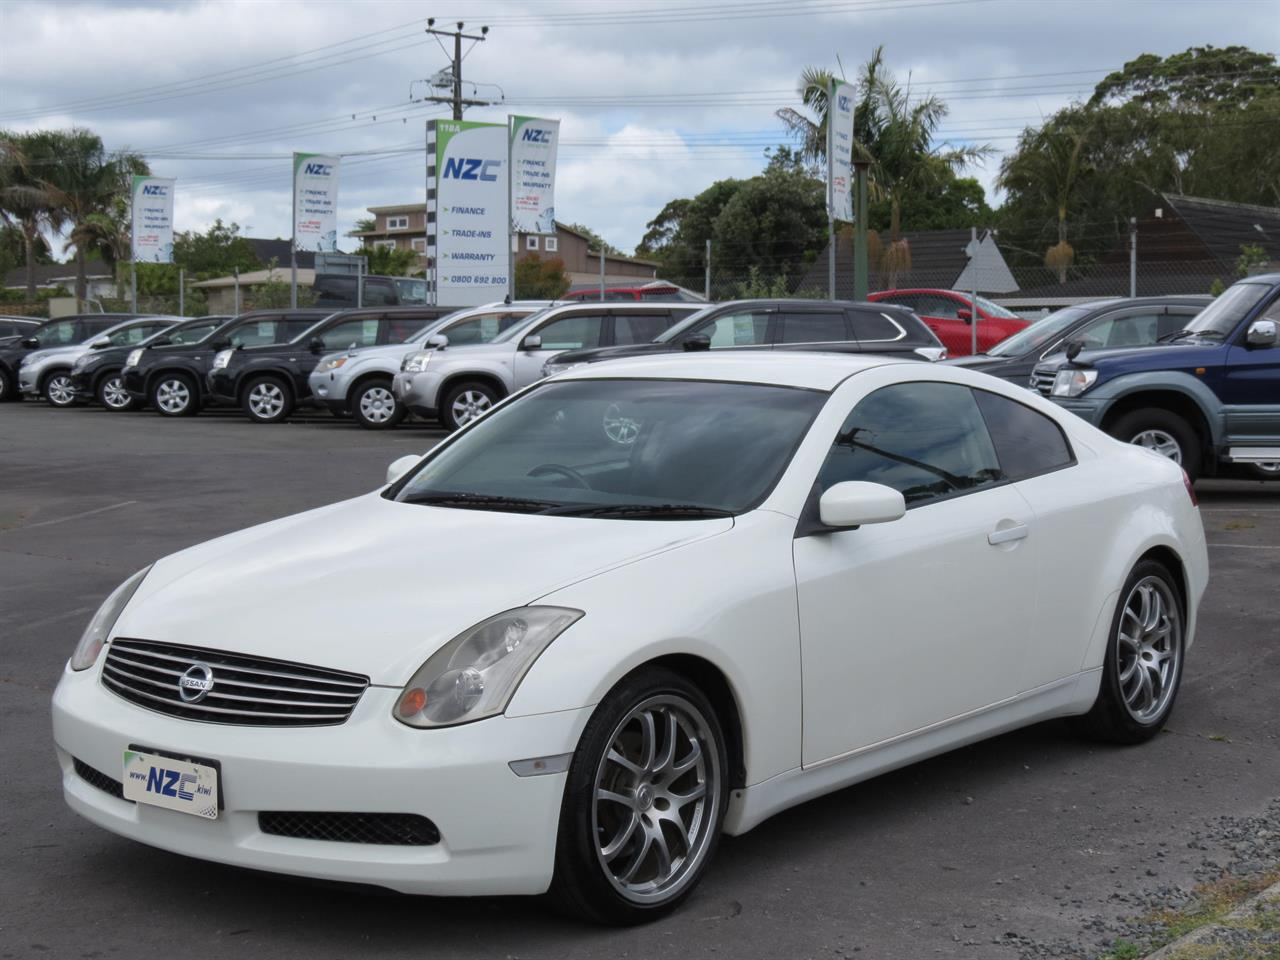 2005 Nissan Skyline | only $45 weekly